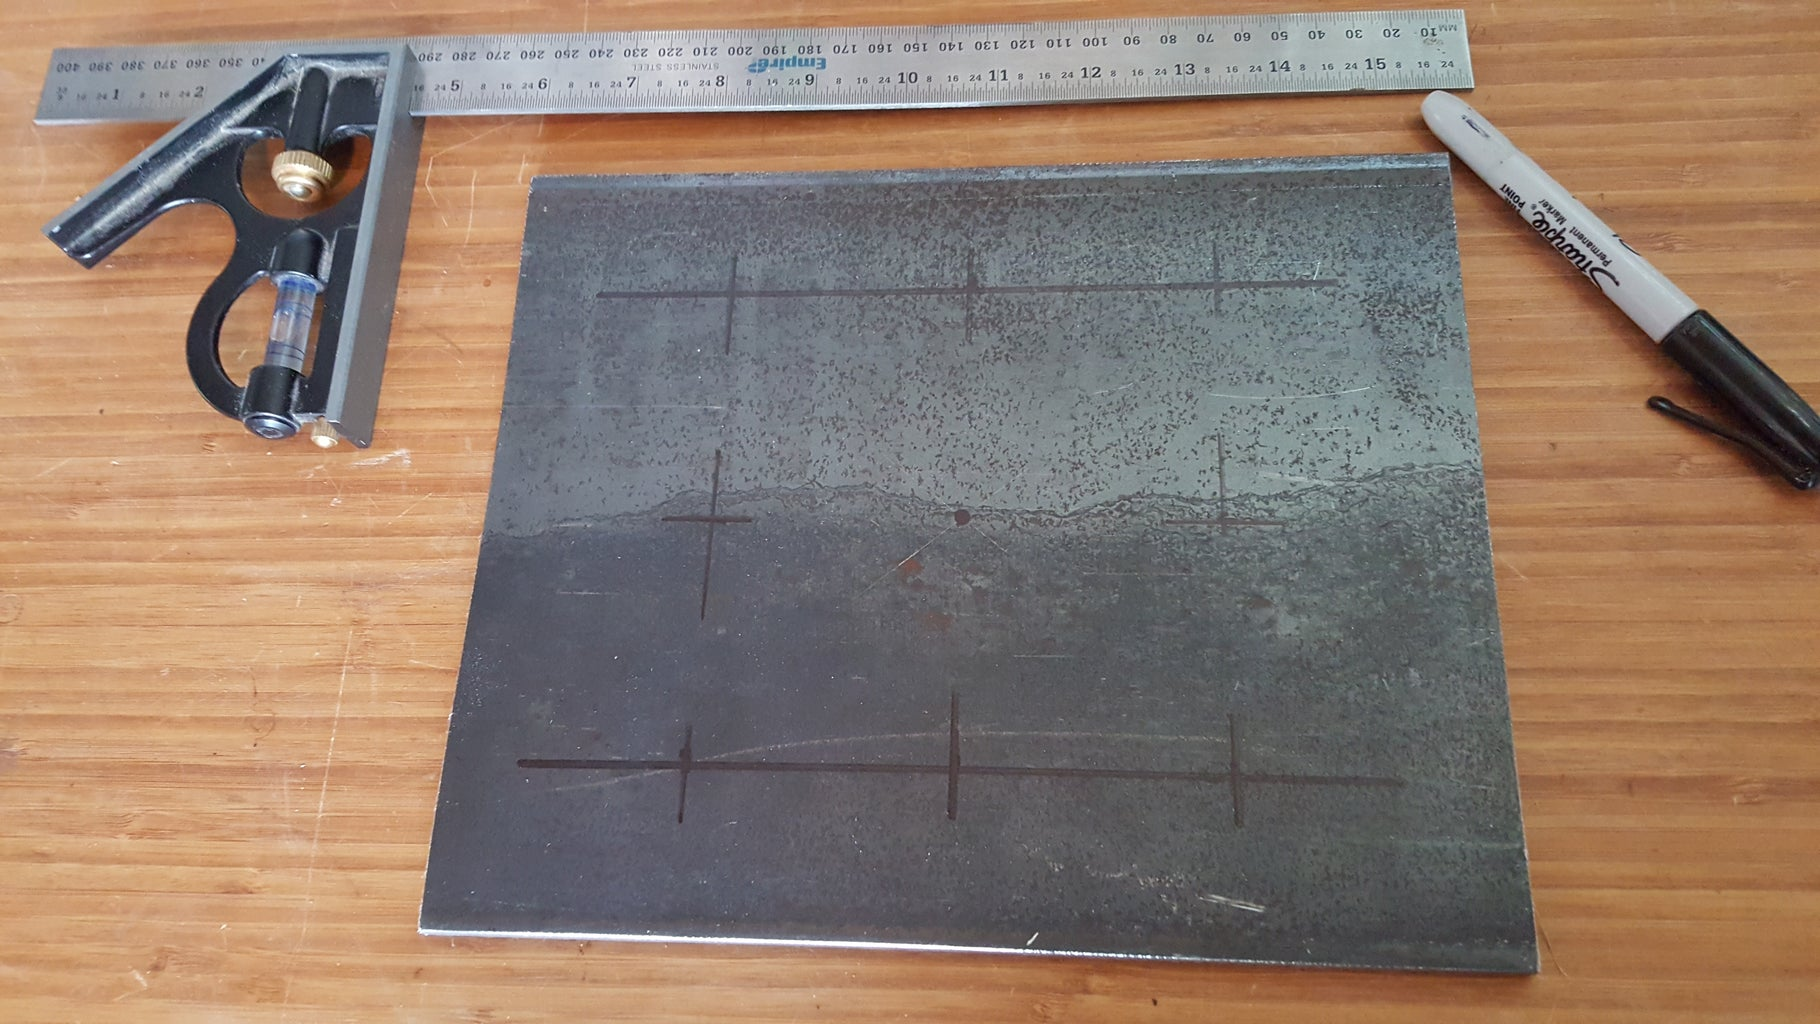 Mounting Plate for Concrete